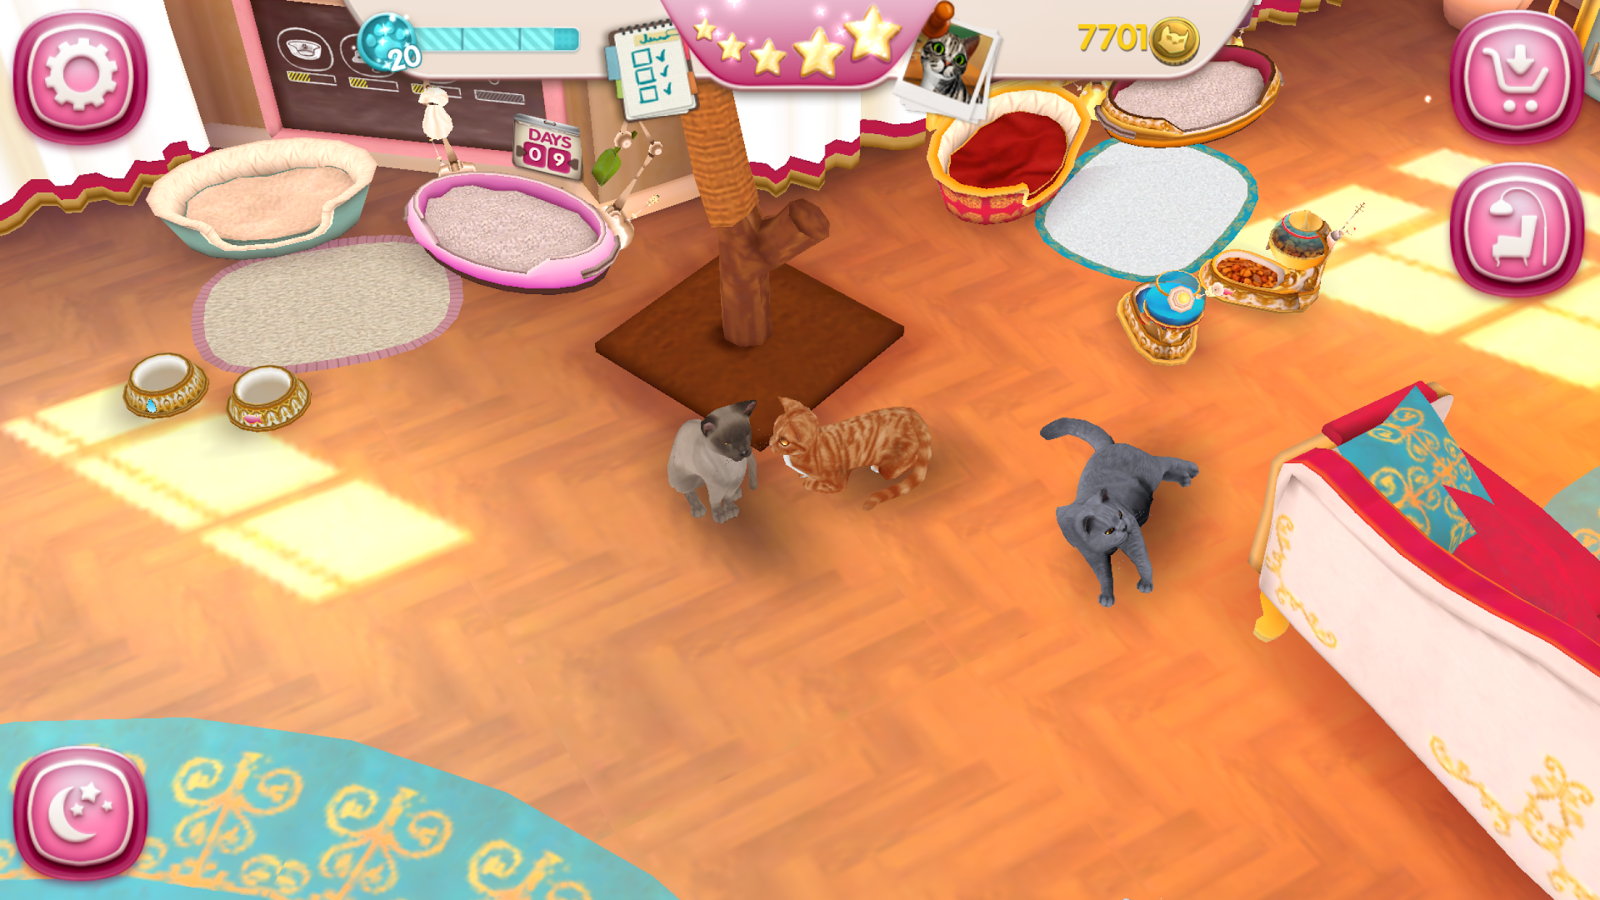 CatHotel - Hotel for cute cats Screenshot 15